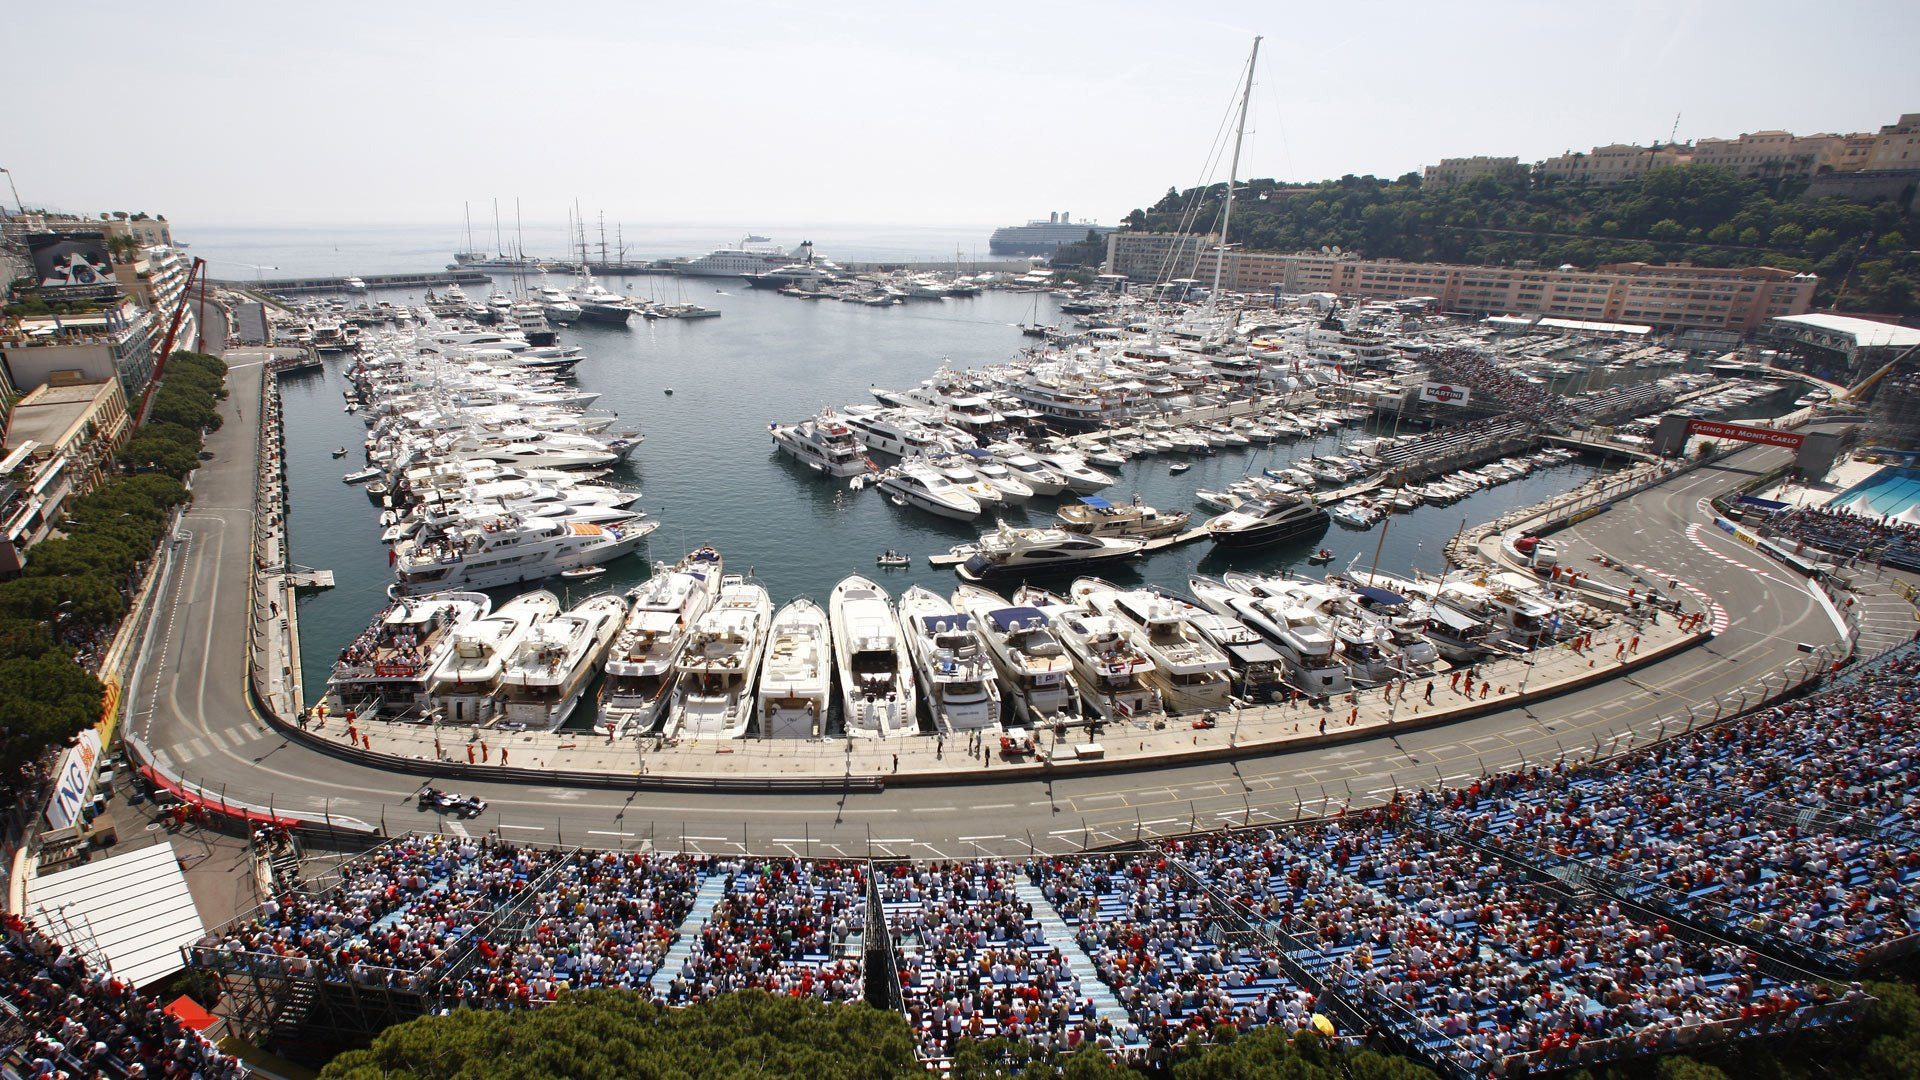 Keep Up-To-Date With GDI Monaco F1 Event On Social Media